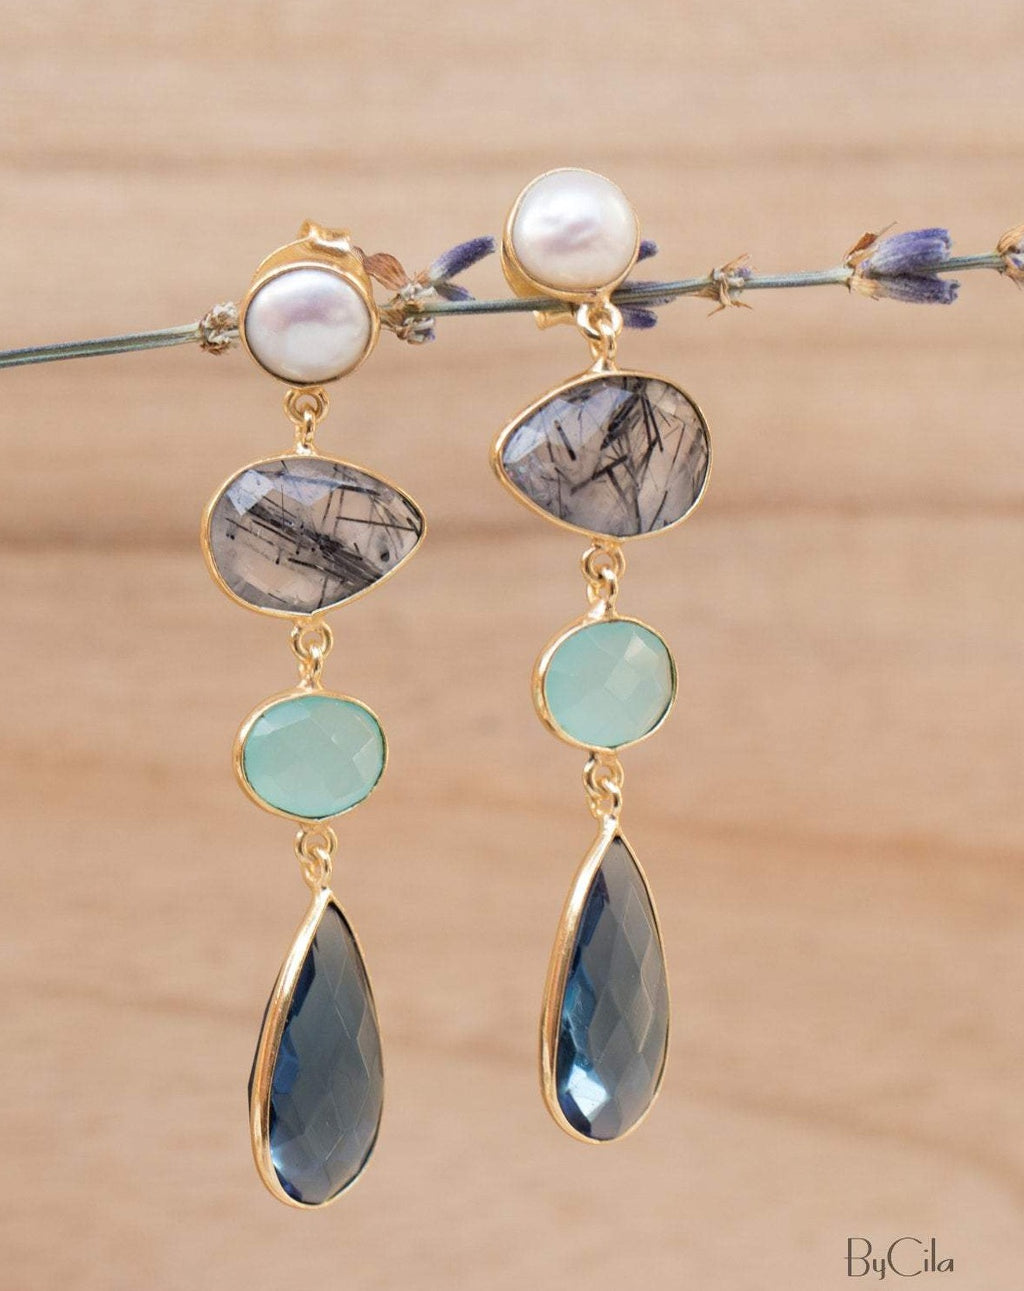 Bela Liz Earrings * Pearl, Black Tourmaline Quartz, Aqua Chalcedony & Iolite hydro * Gold Plated 18k * BJE088